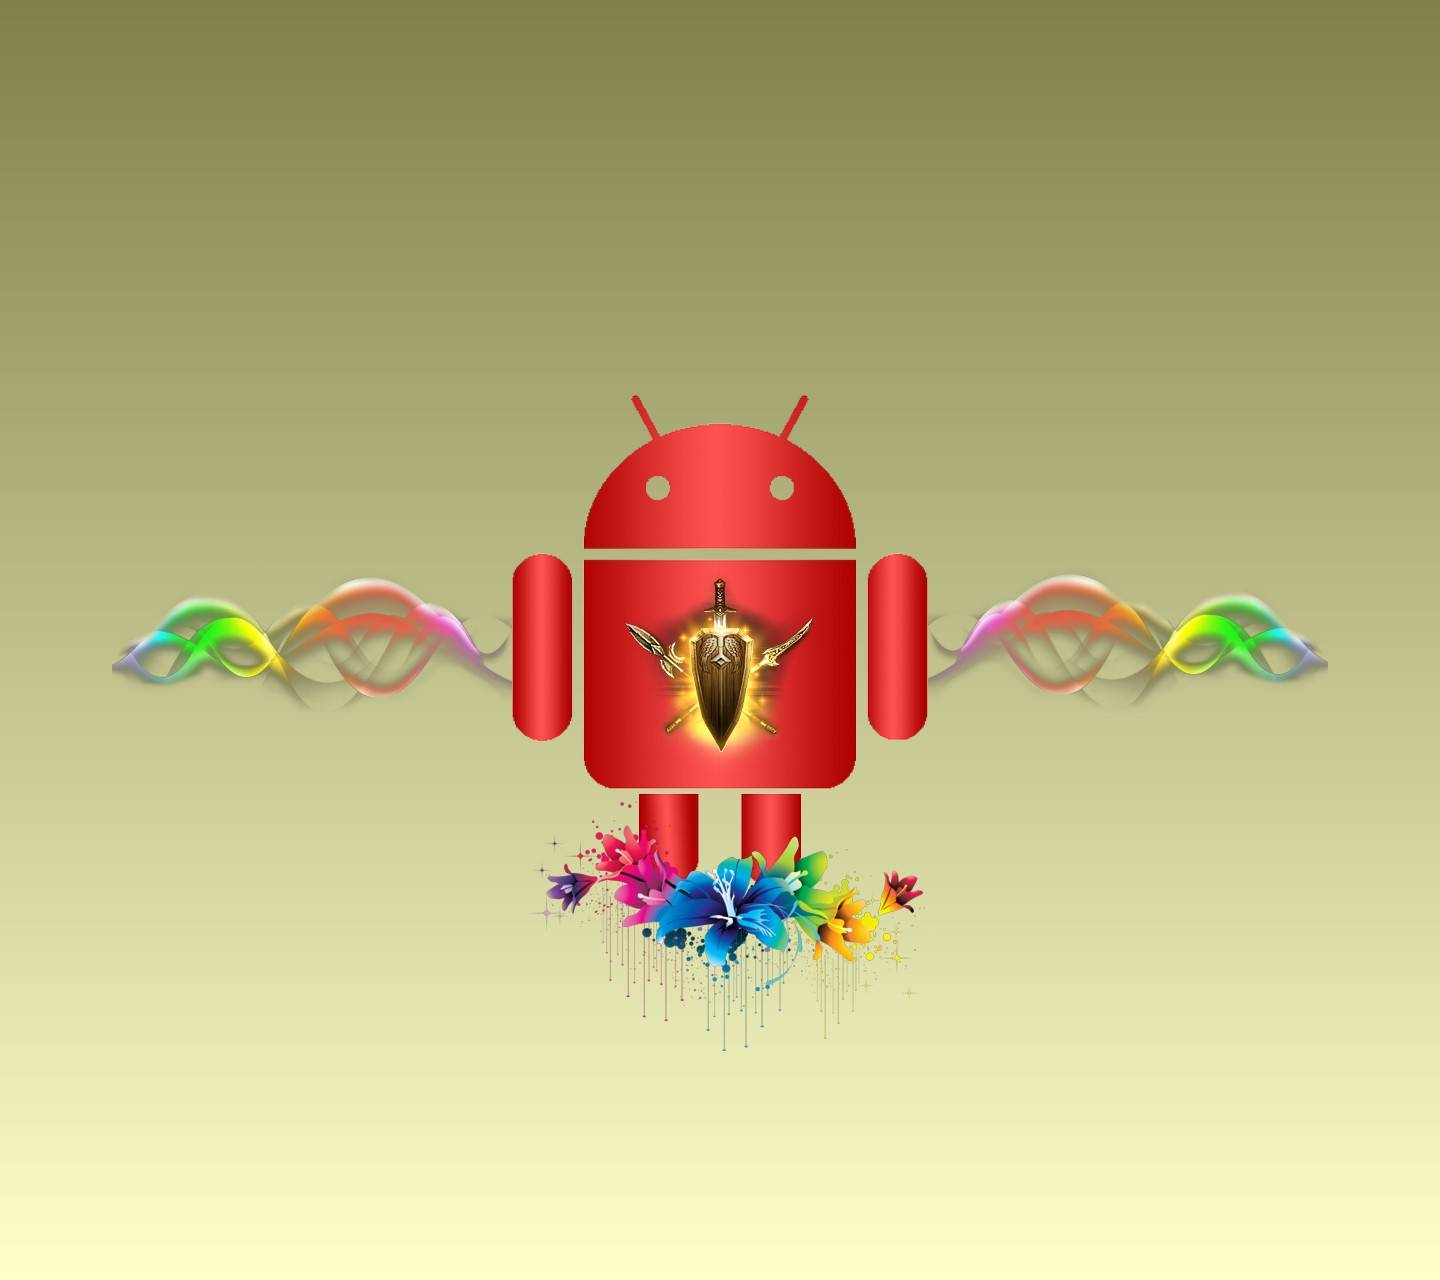 android logo 3